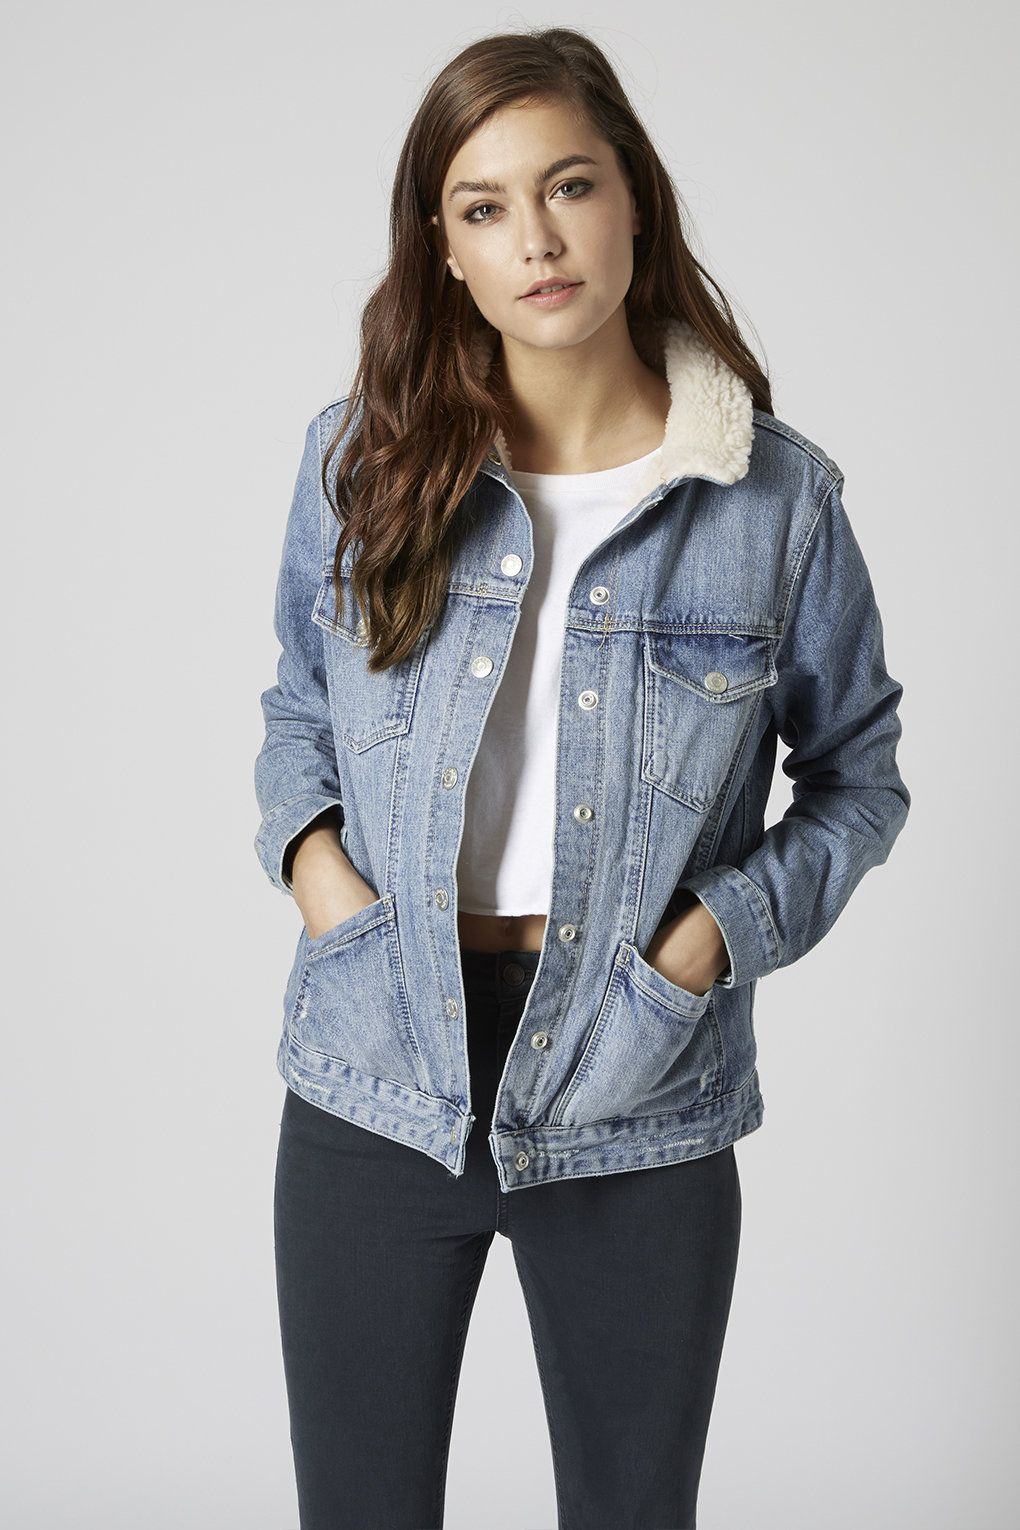 MOTO Light Stone Western Jacket Denim outfit for